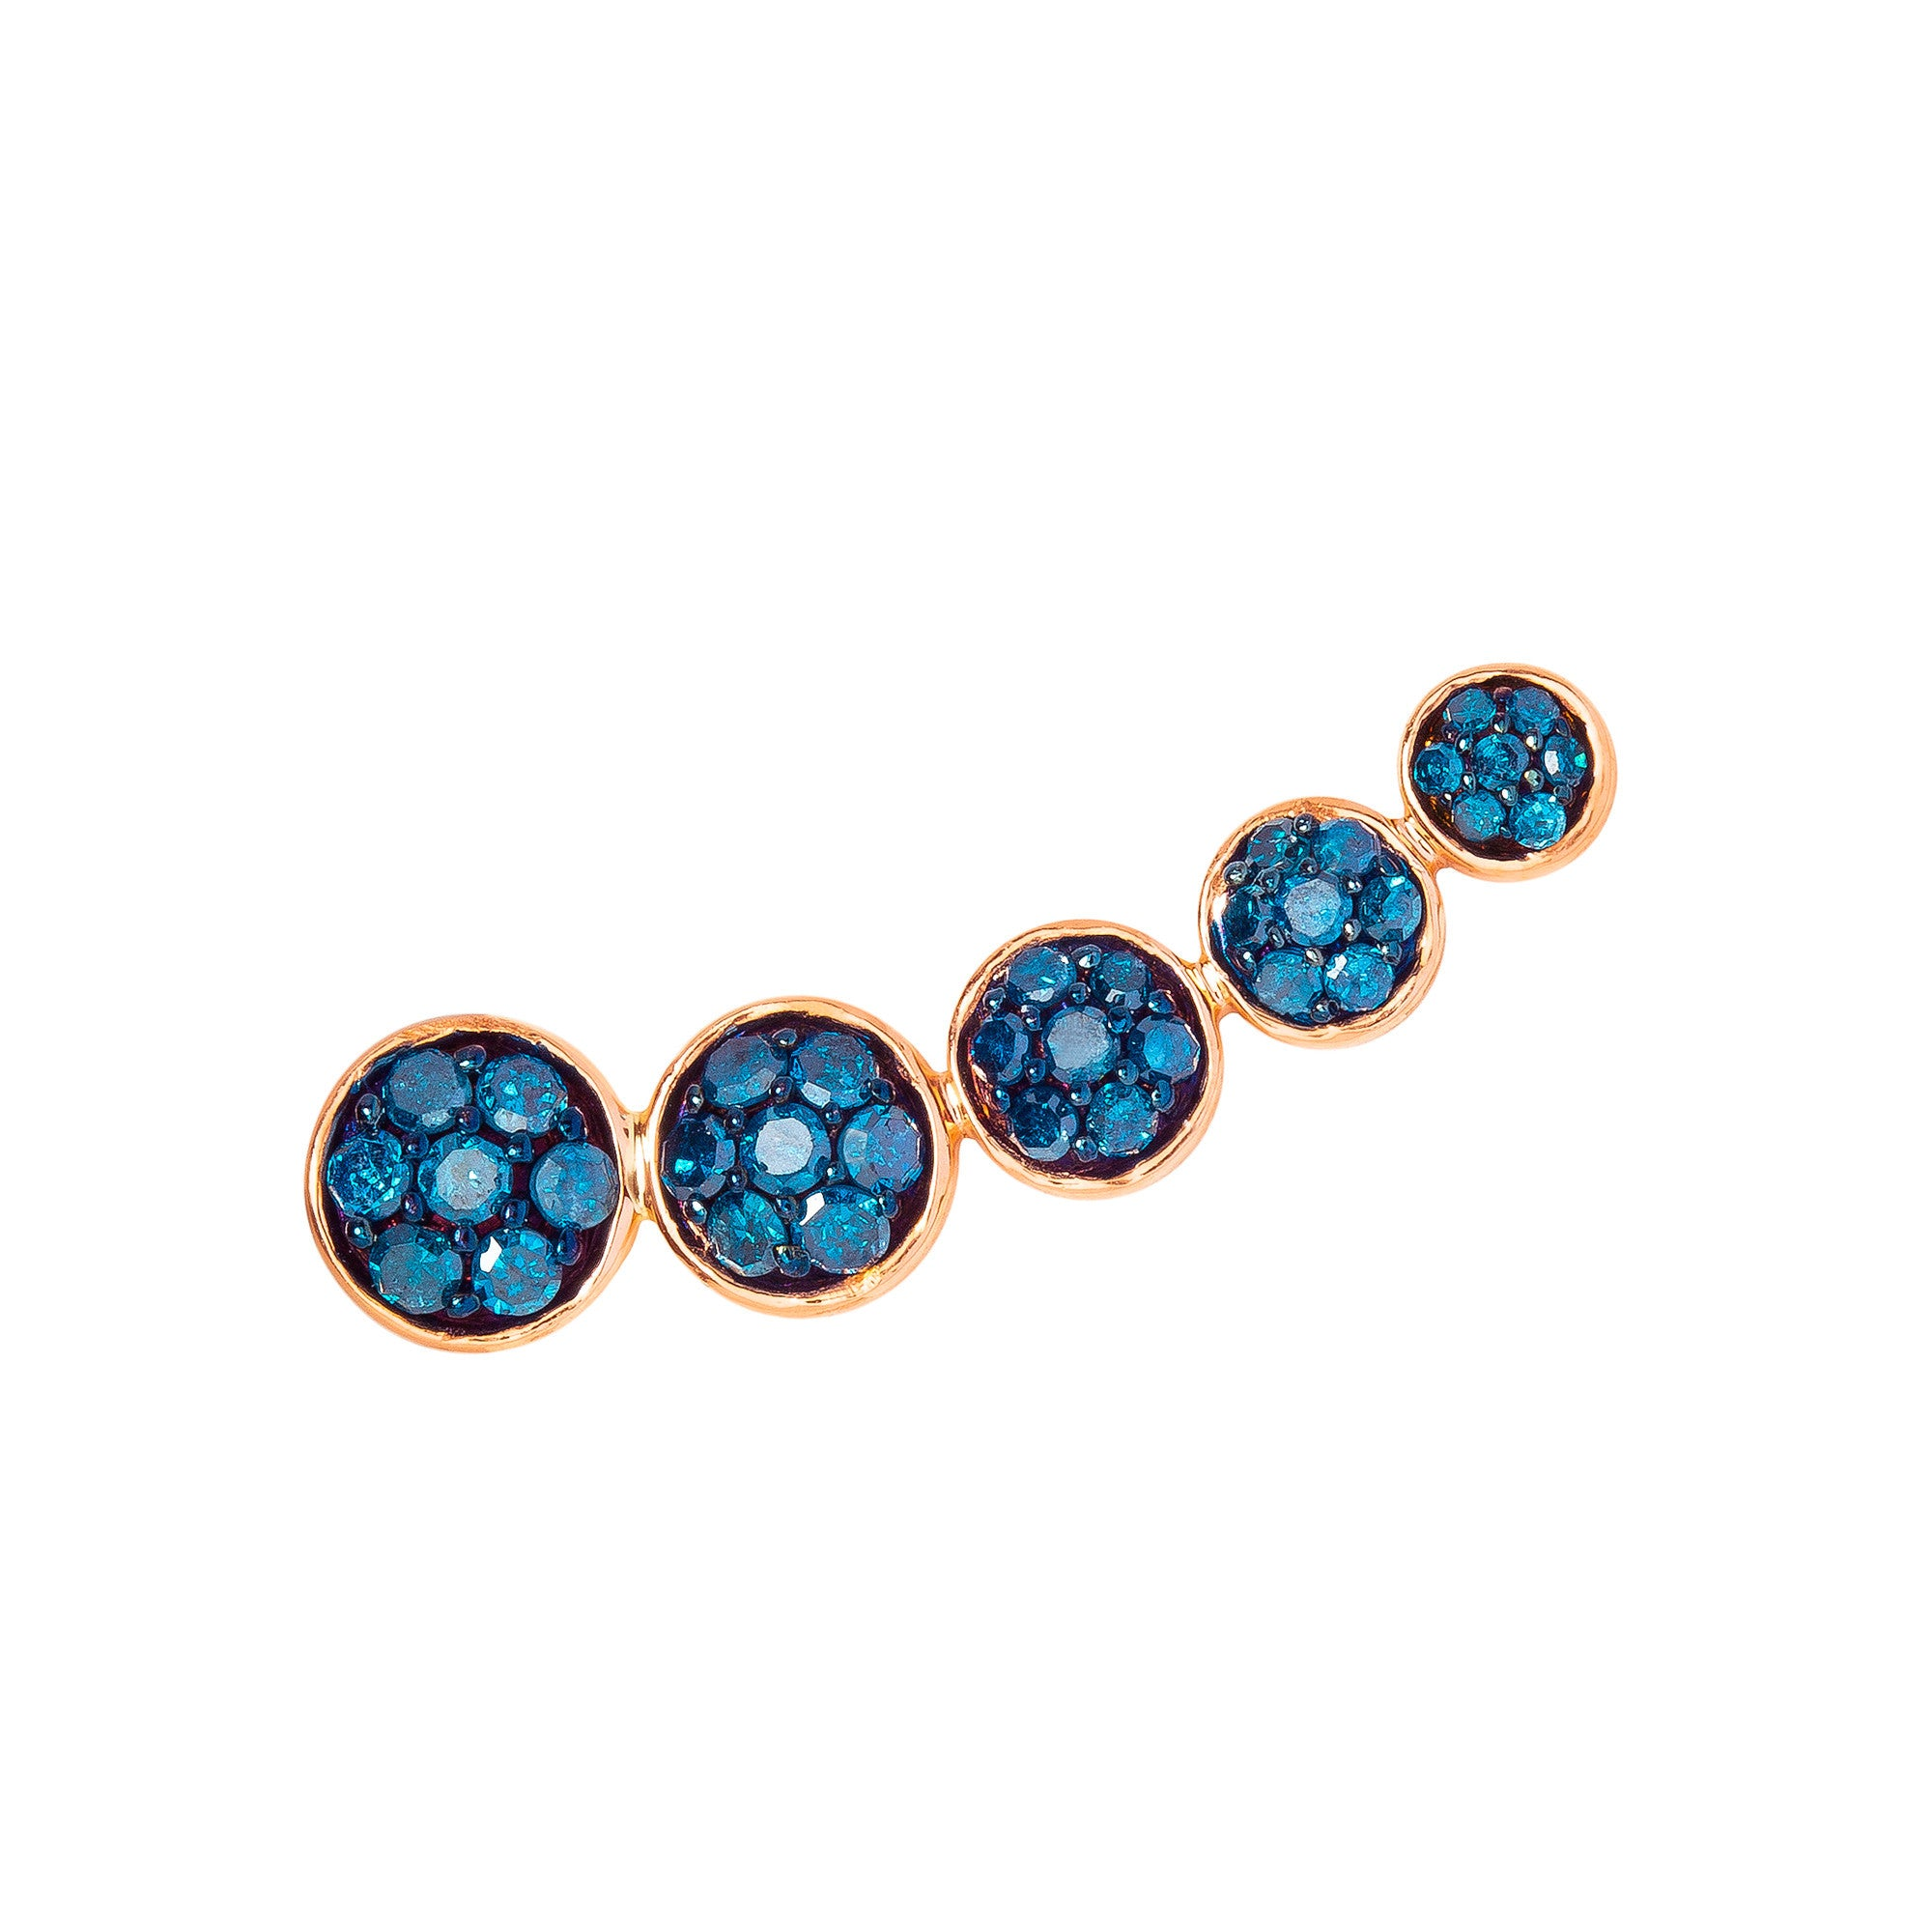 en effervescence london of blue necklace hires eu diamond stud links